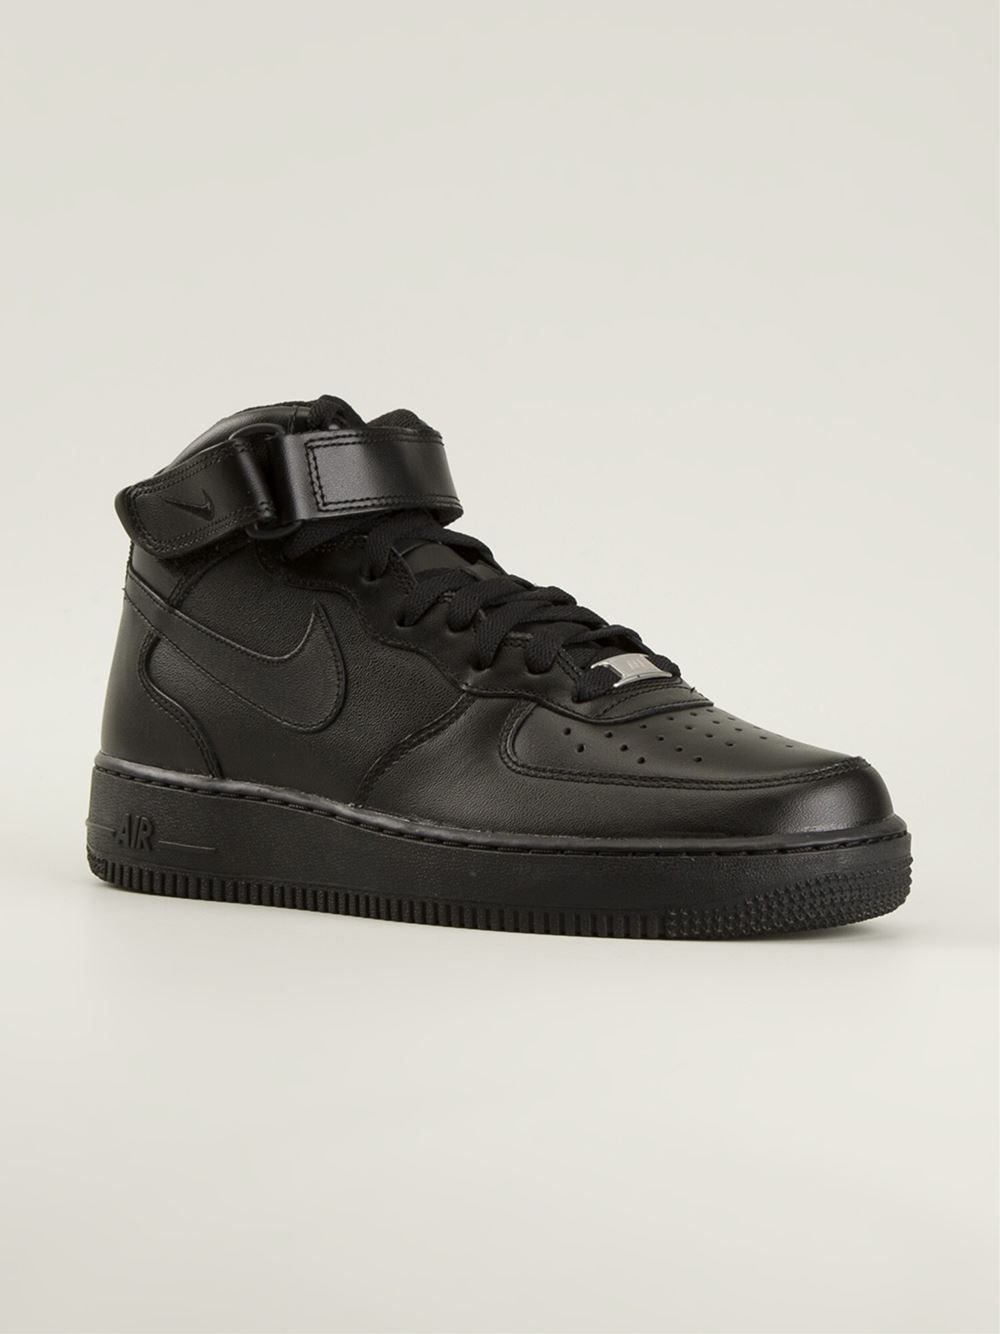 Nike 'air Force 1 Mid '07' Sneakers - Voo Store - Farfetch.com